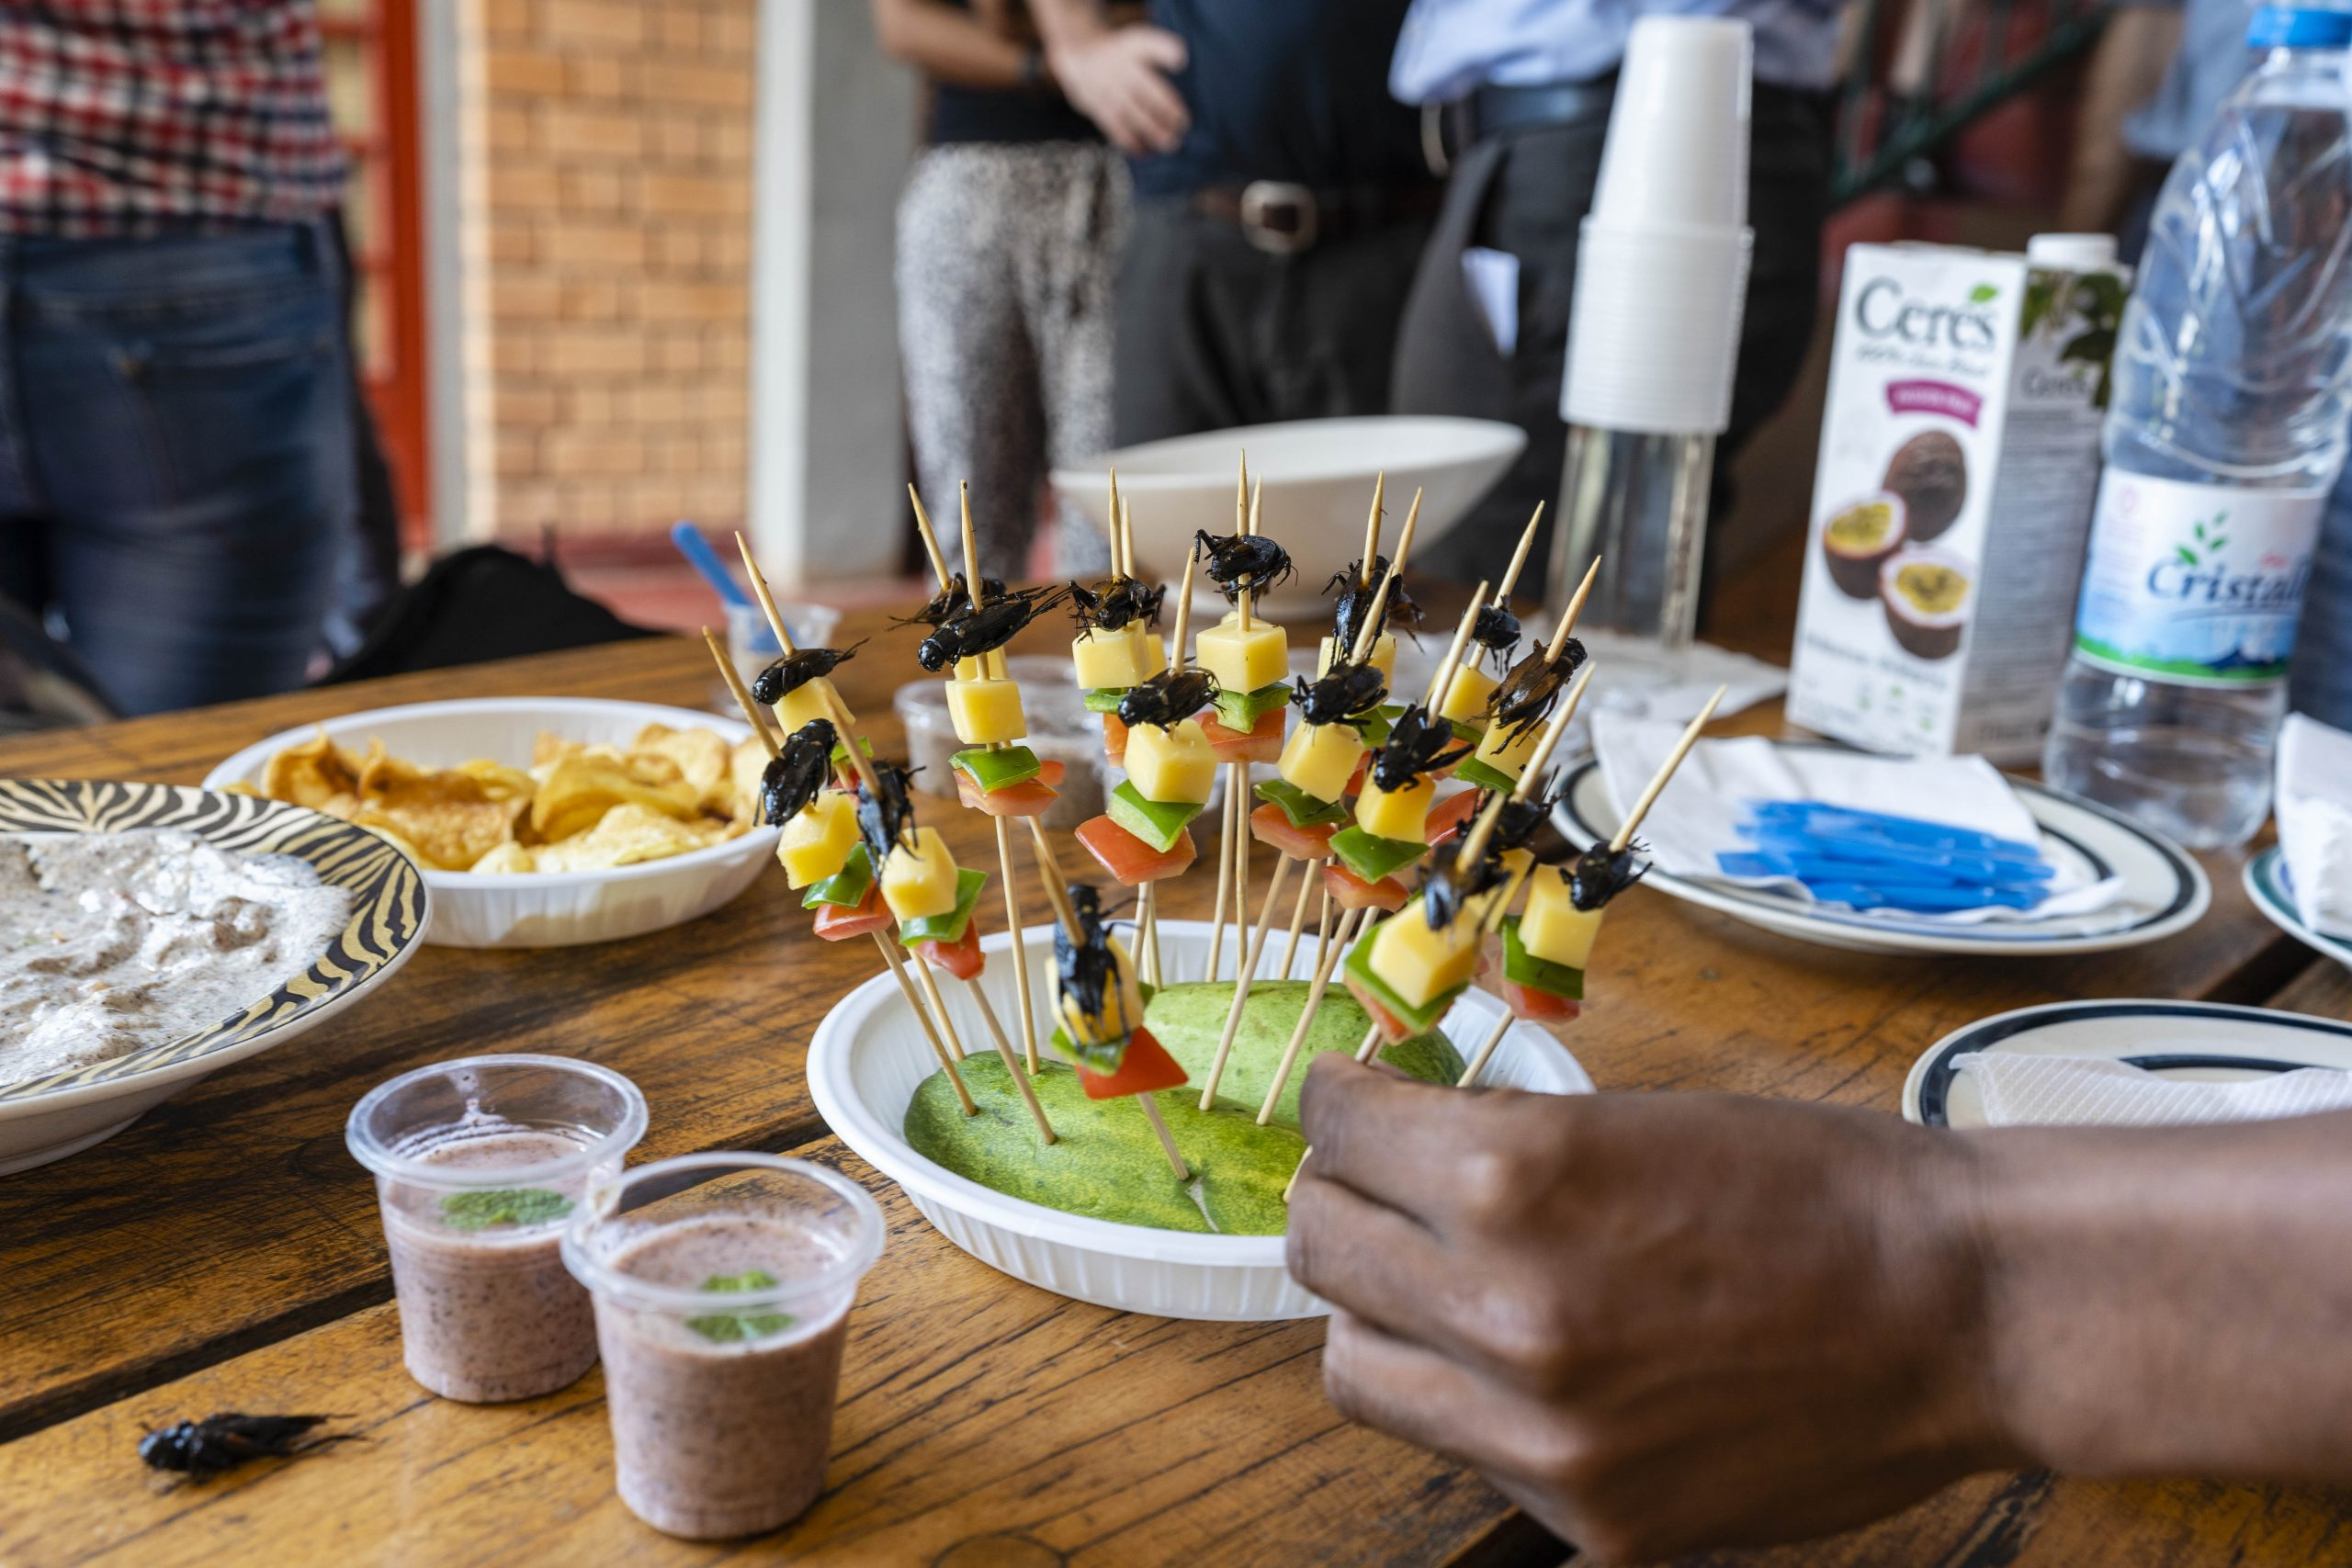 Cricket appetizers are served to guests at Valala Farm. Founder Brian Fisher hopes that Valala is the first of many cricket farms to be built in Madagascar.